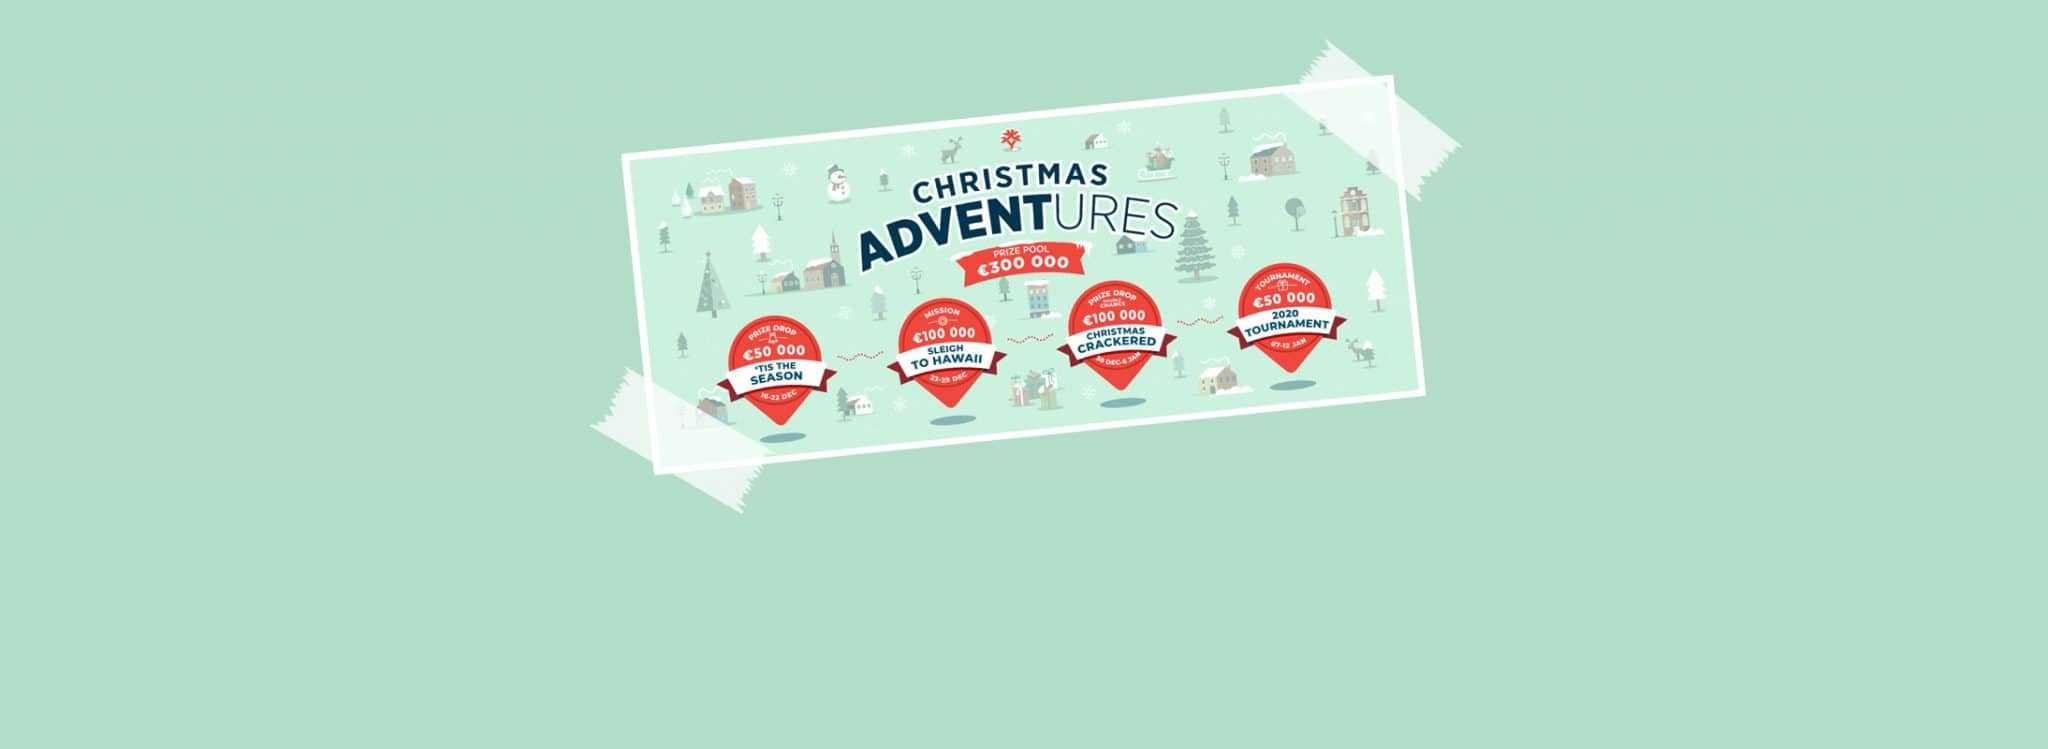 Yggdrasil Launches ADVENTures Christmas Campaign